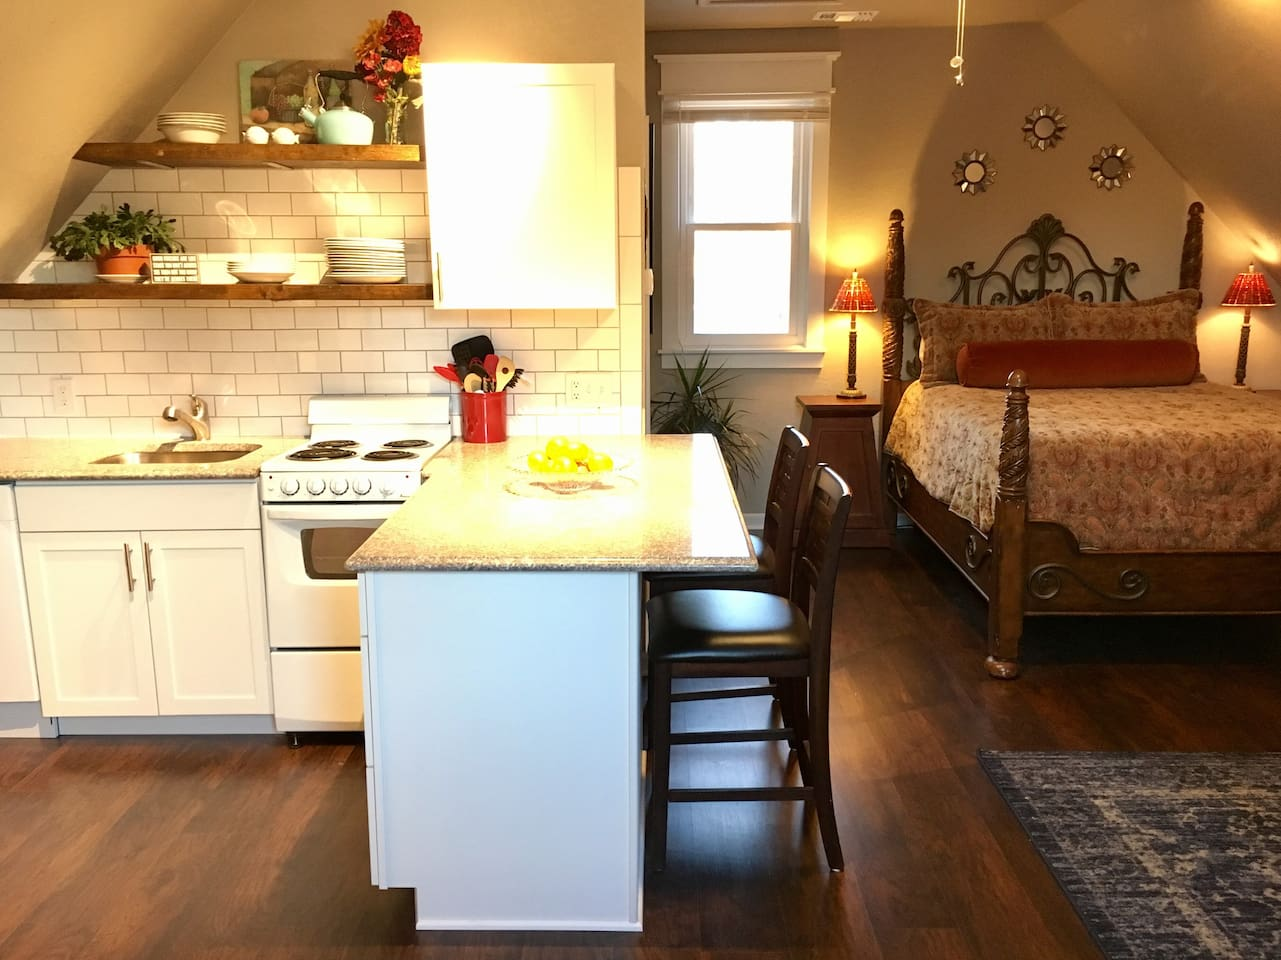 Everything  newly refinished, fresh, clean and cozy!